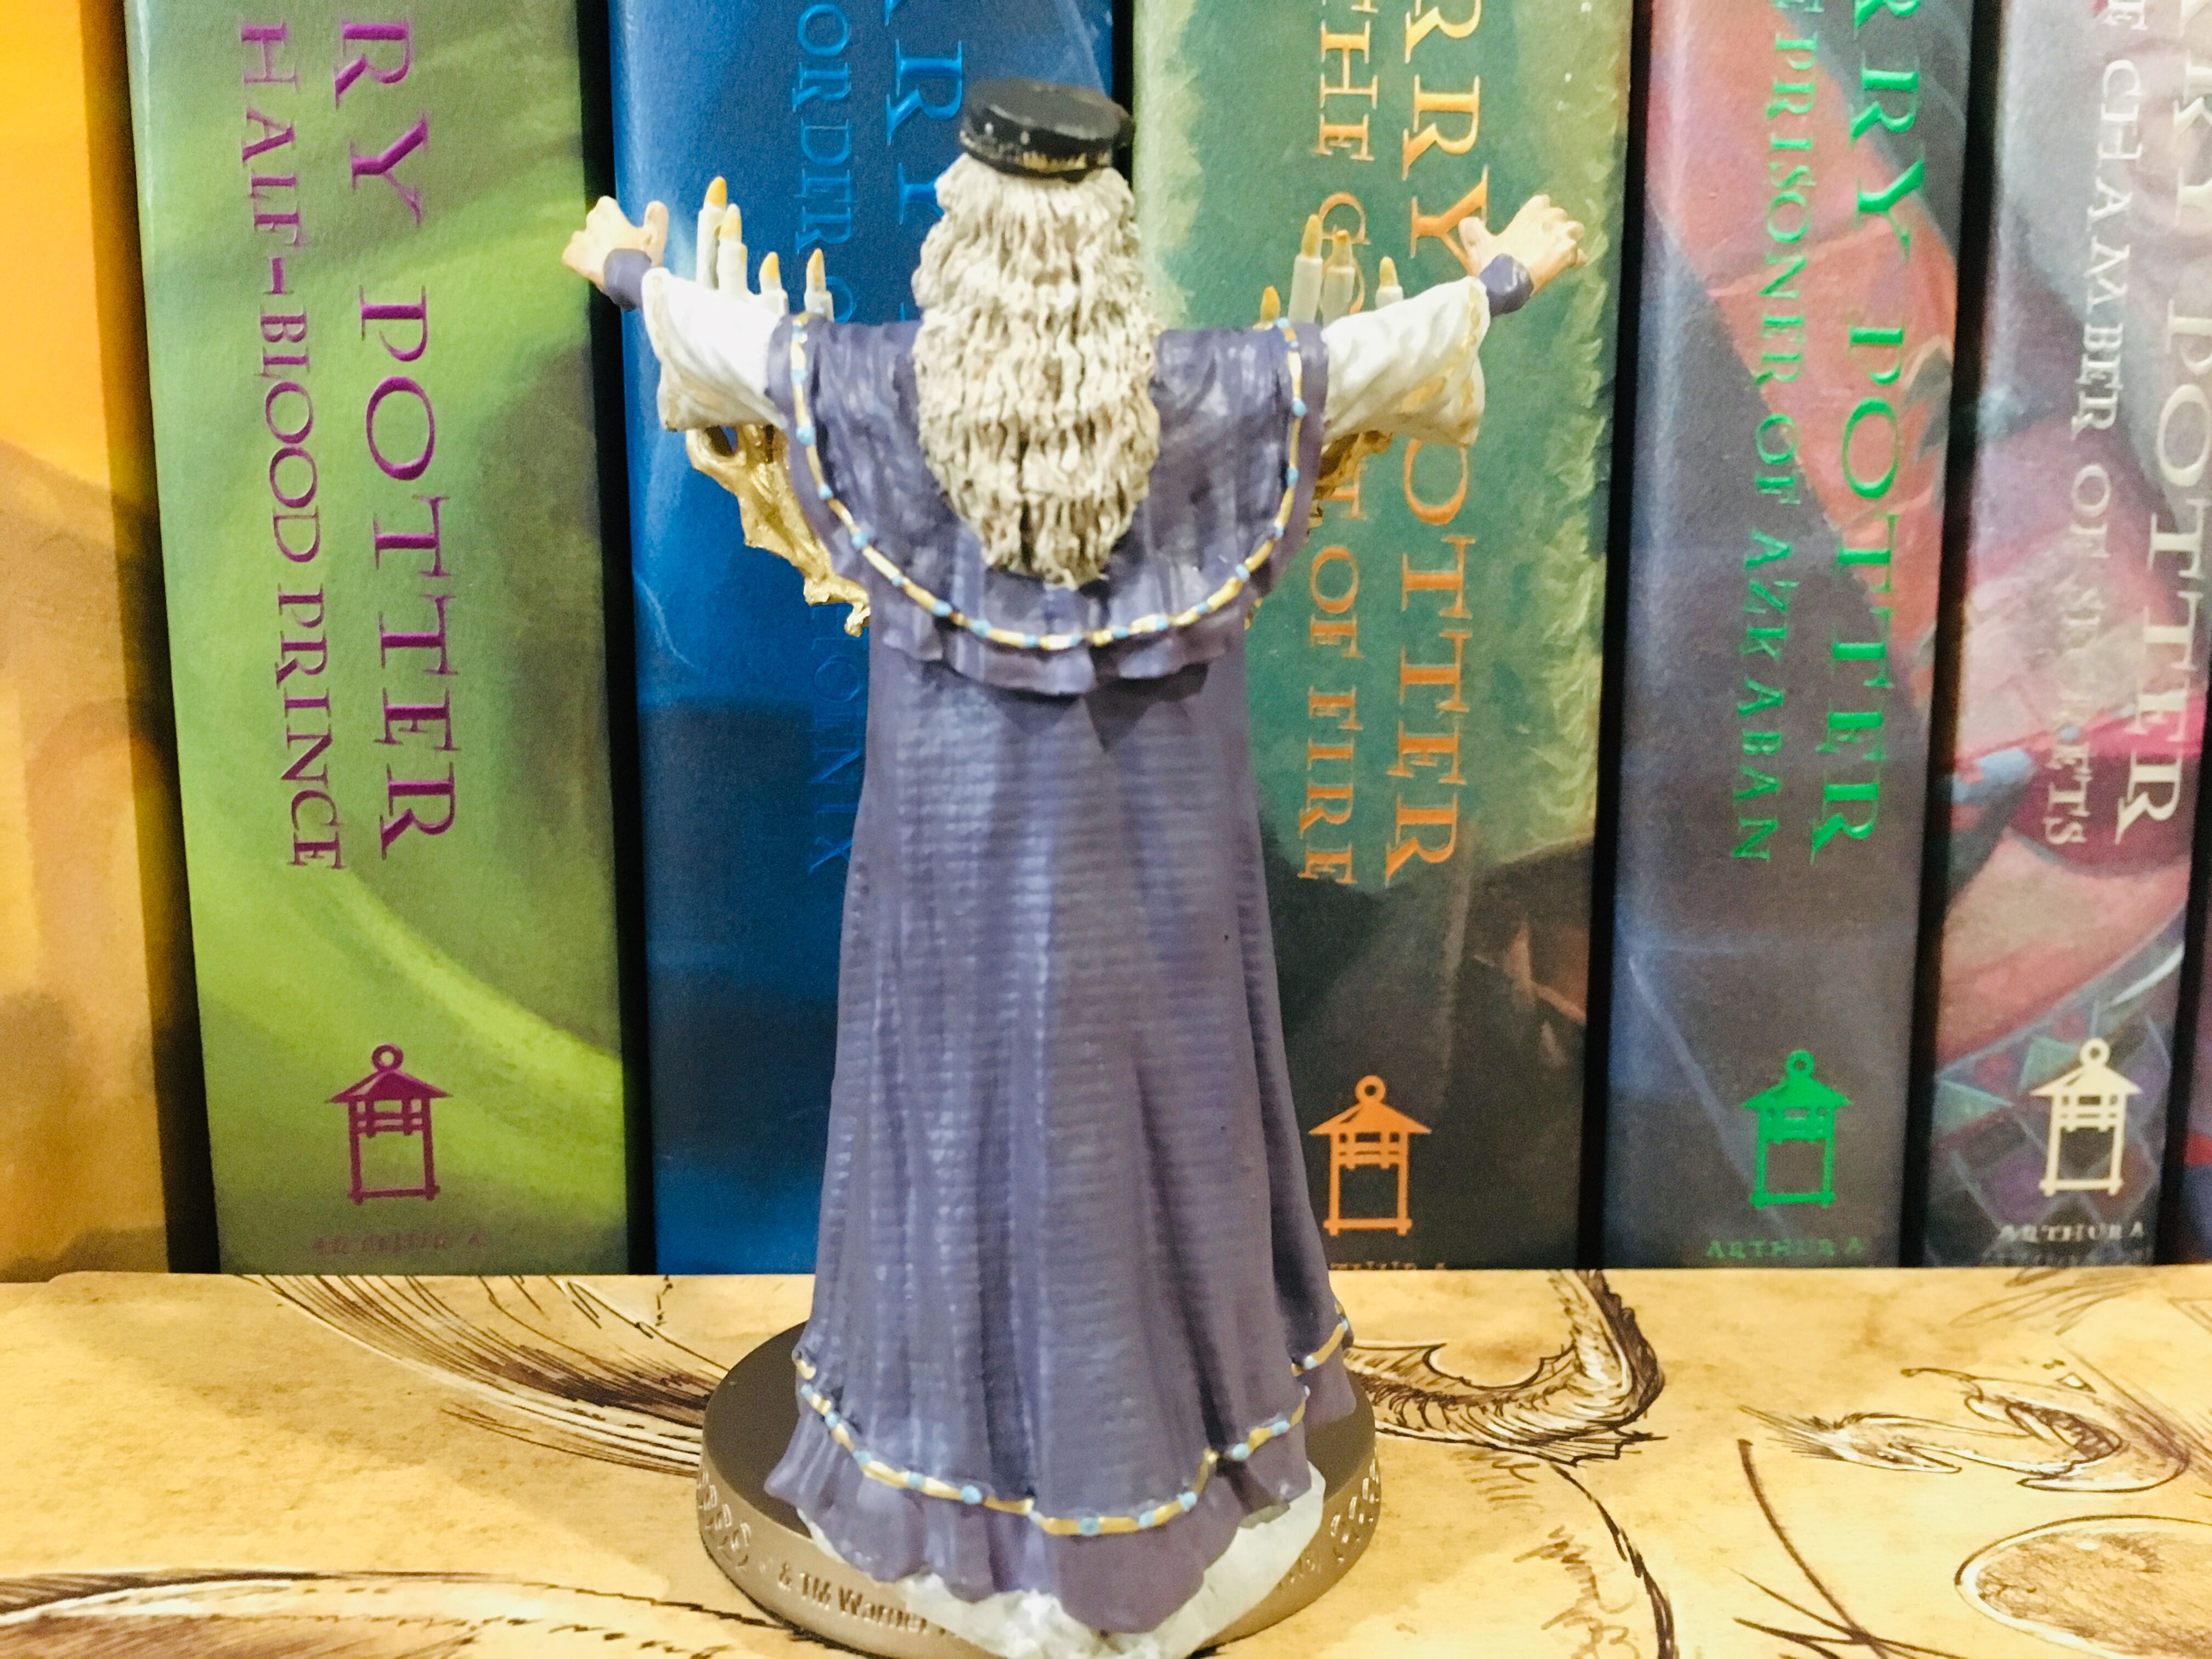 From the back, Dumbledore is just as detailed as from the front, and one can clearly see the level of care put into designing his robes.